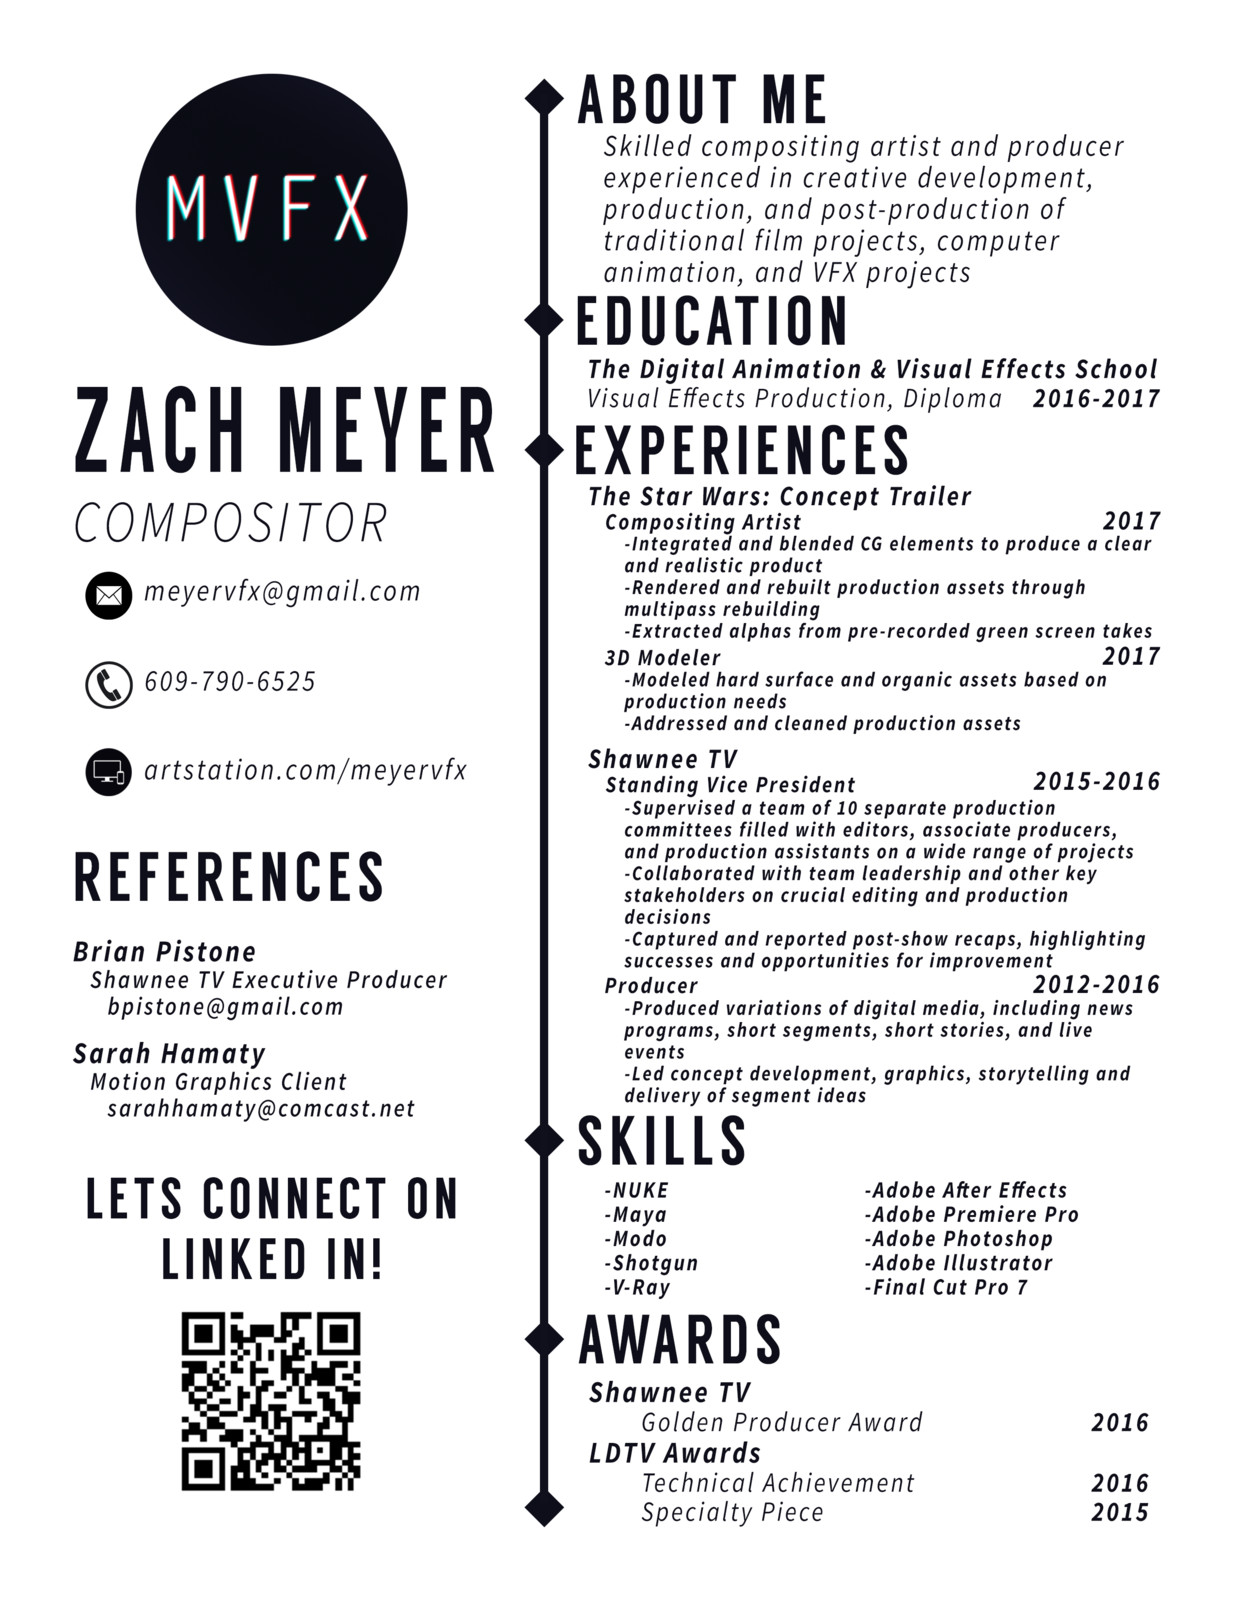 Luxury Vfx Compositor Cv Model - Professional Resume Examples ...